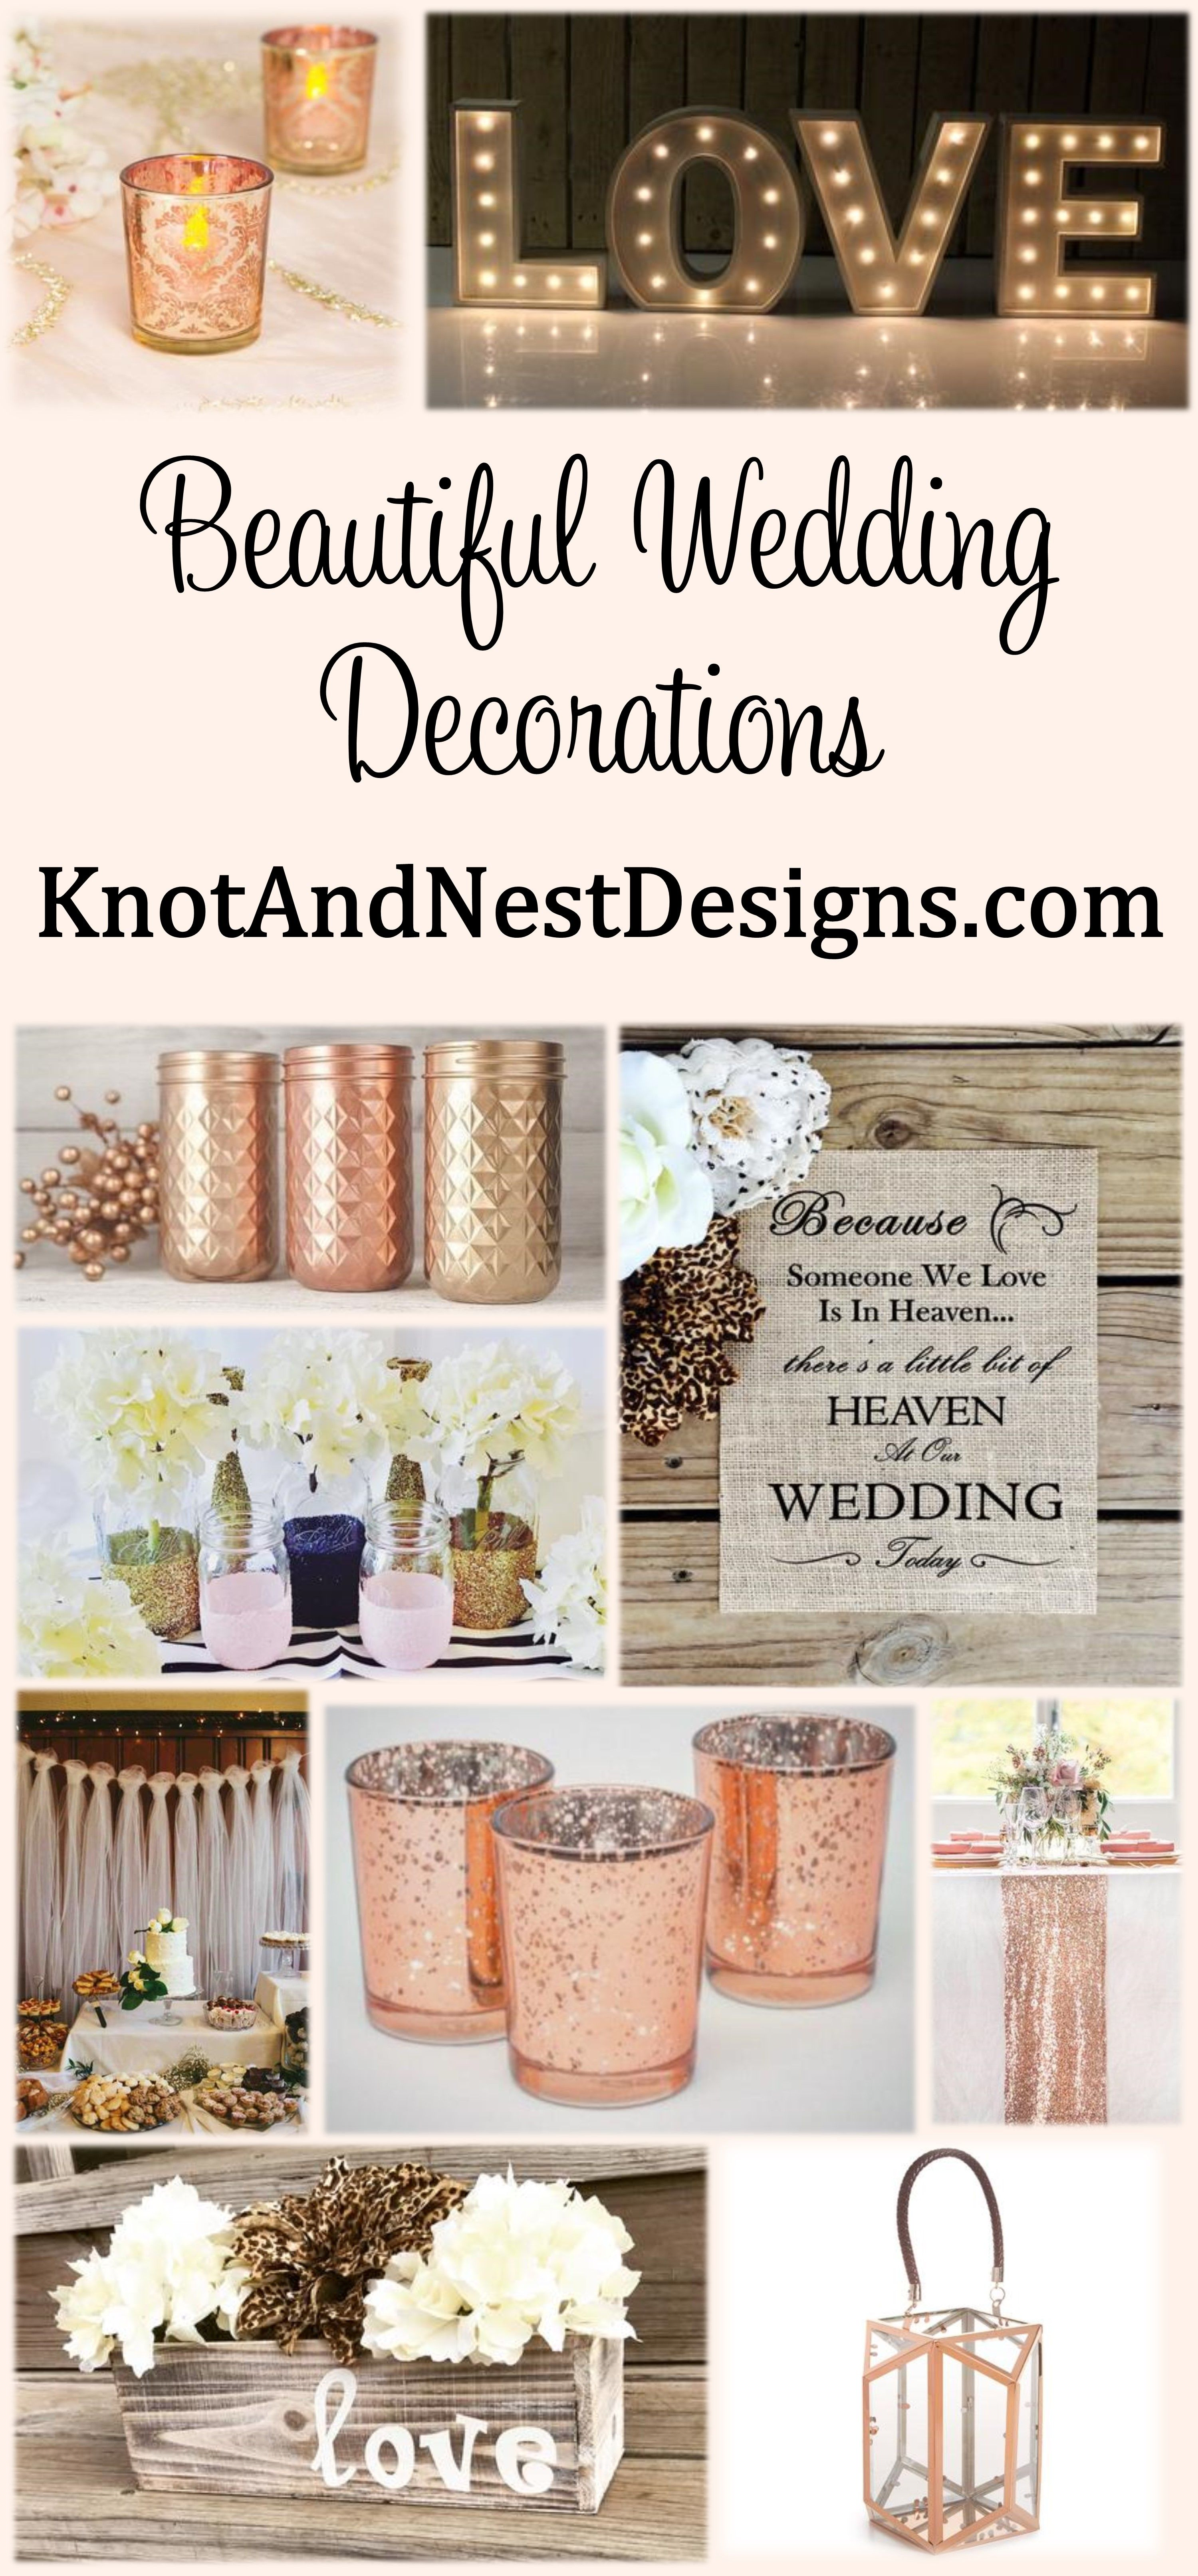 Wedding decorations with flowers november 2018 Pin by Ashley Brown on November th   Pinterest  Wedding